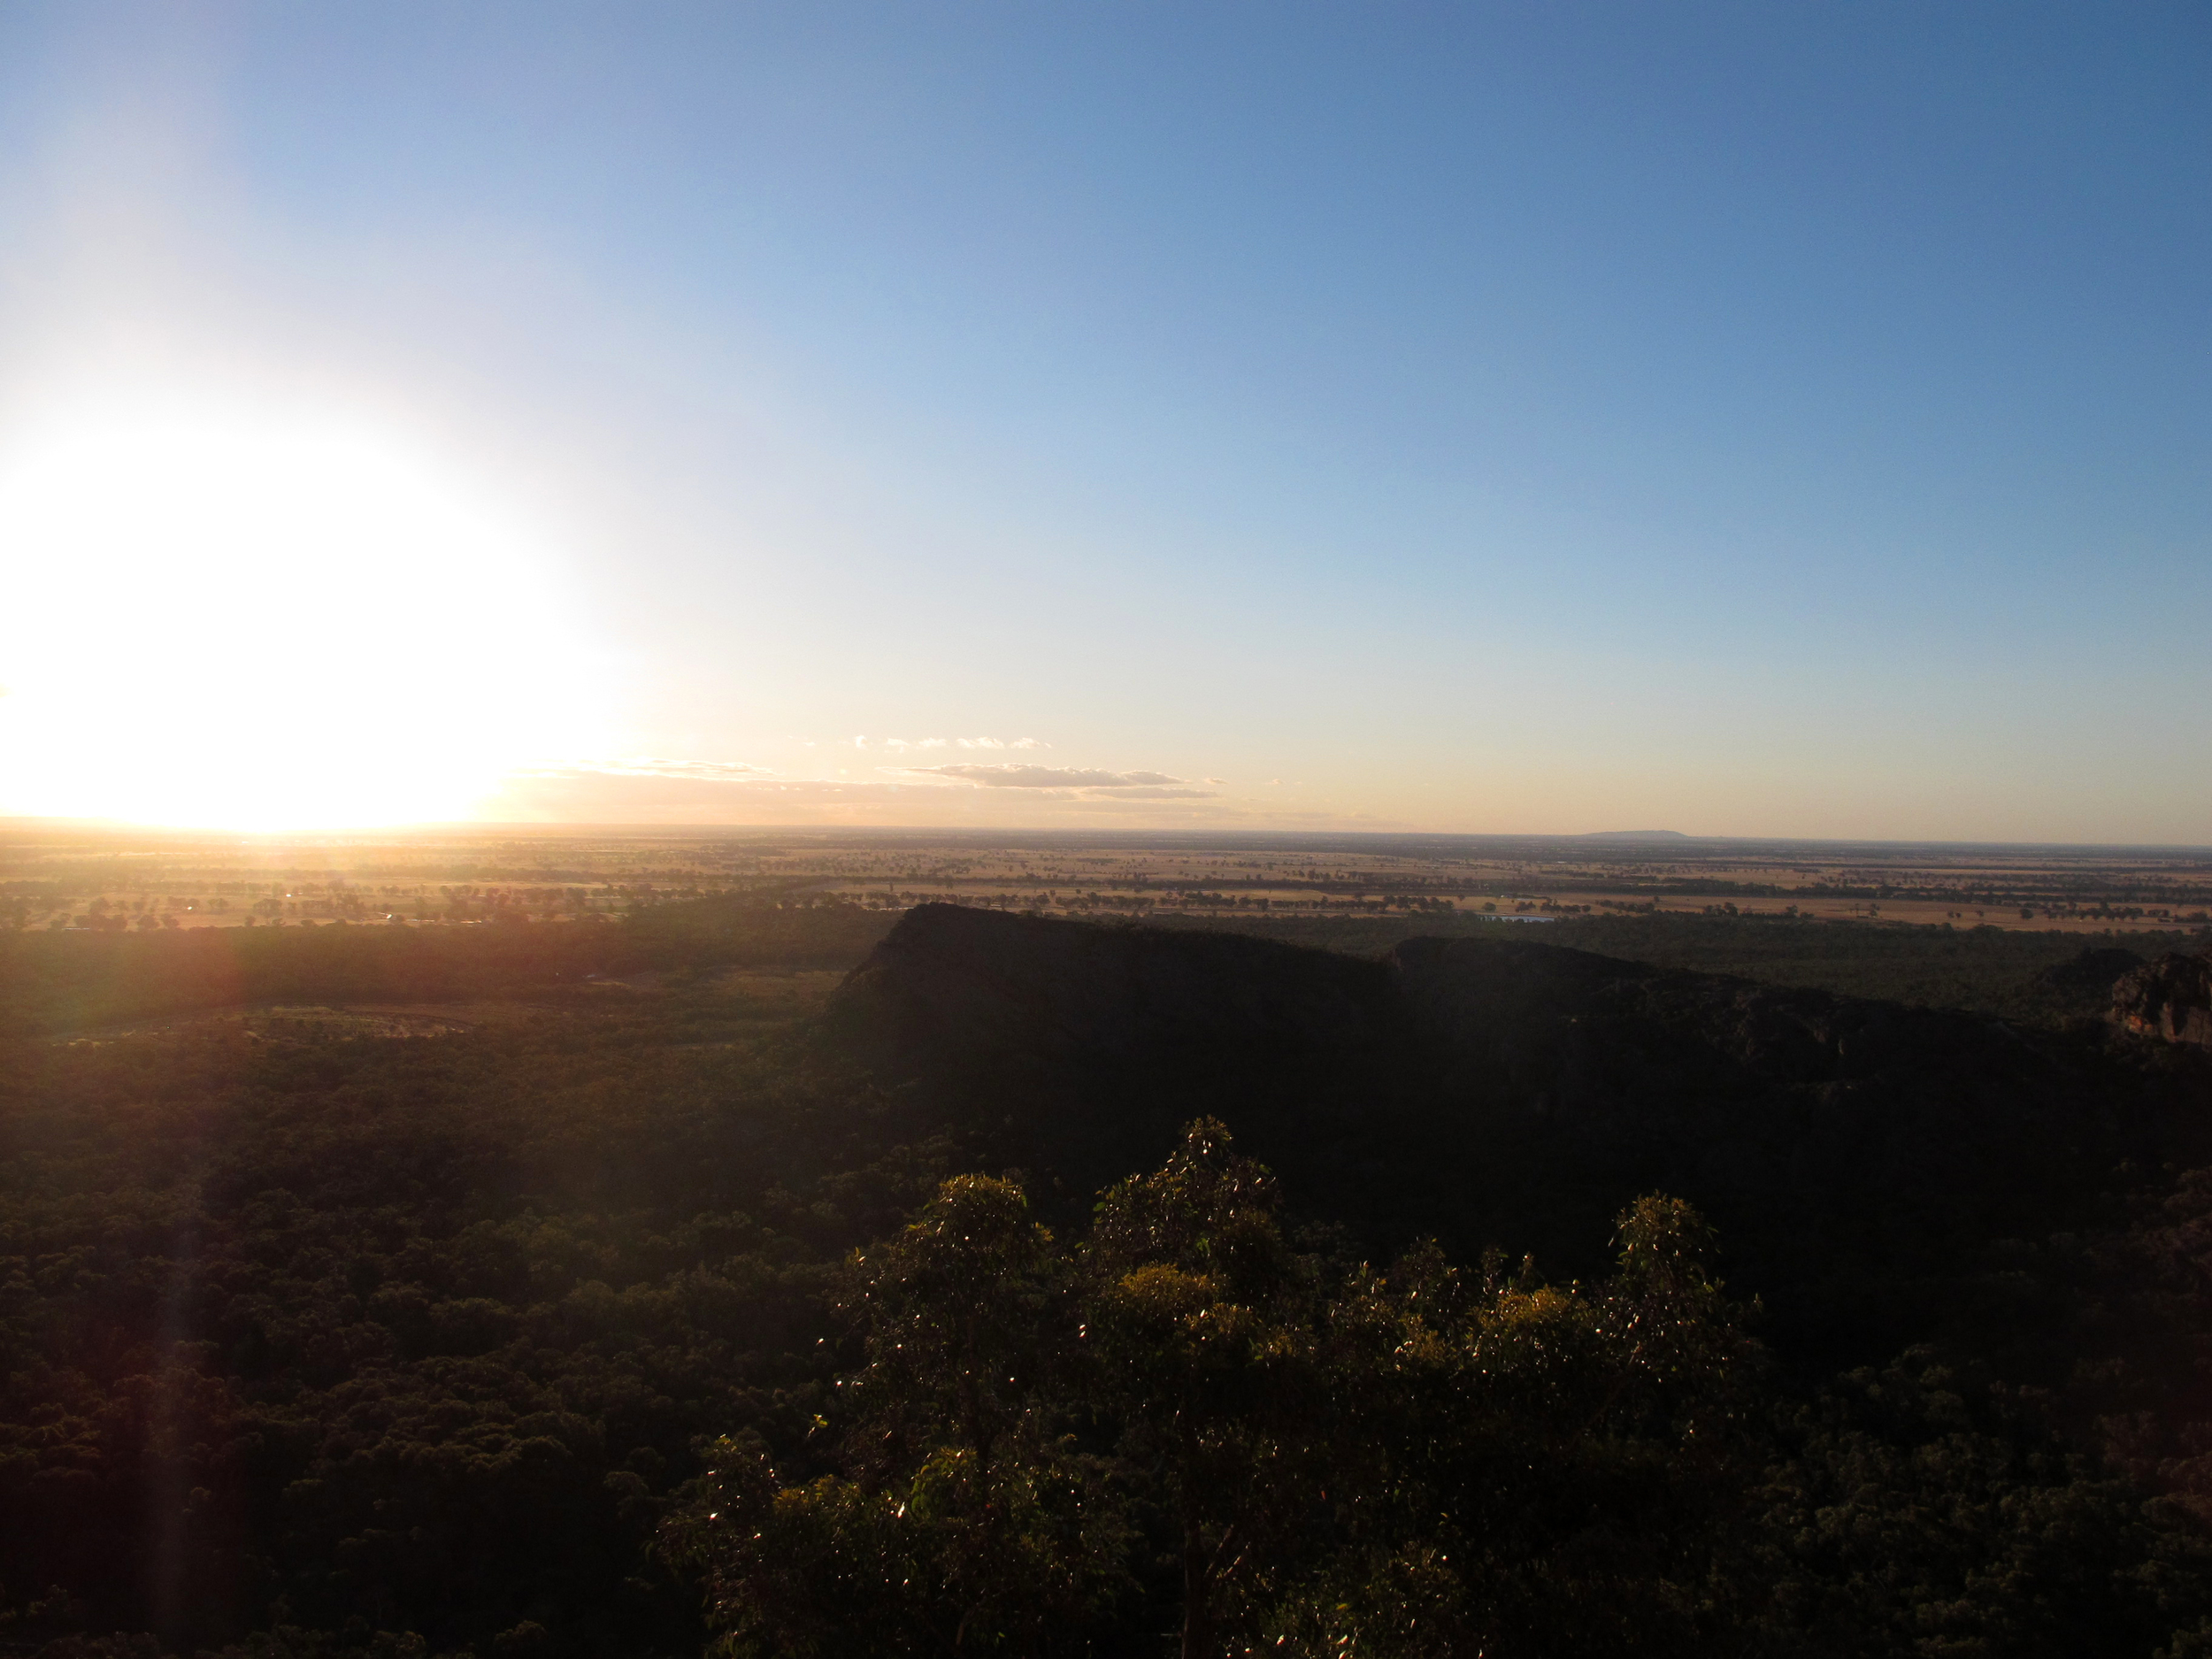 Looking west from Taipan Wall, Grampians, summer 2012. Mt. Arapiles is on the horizon.